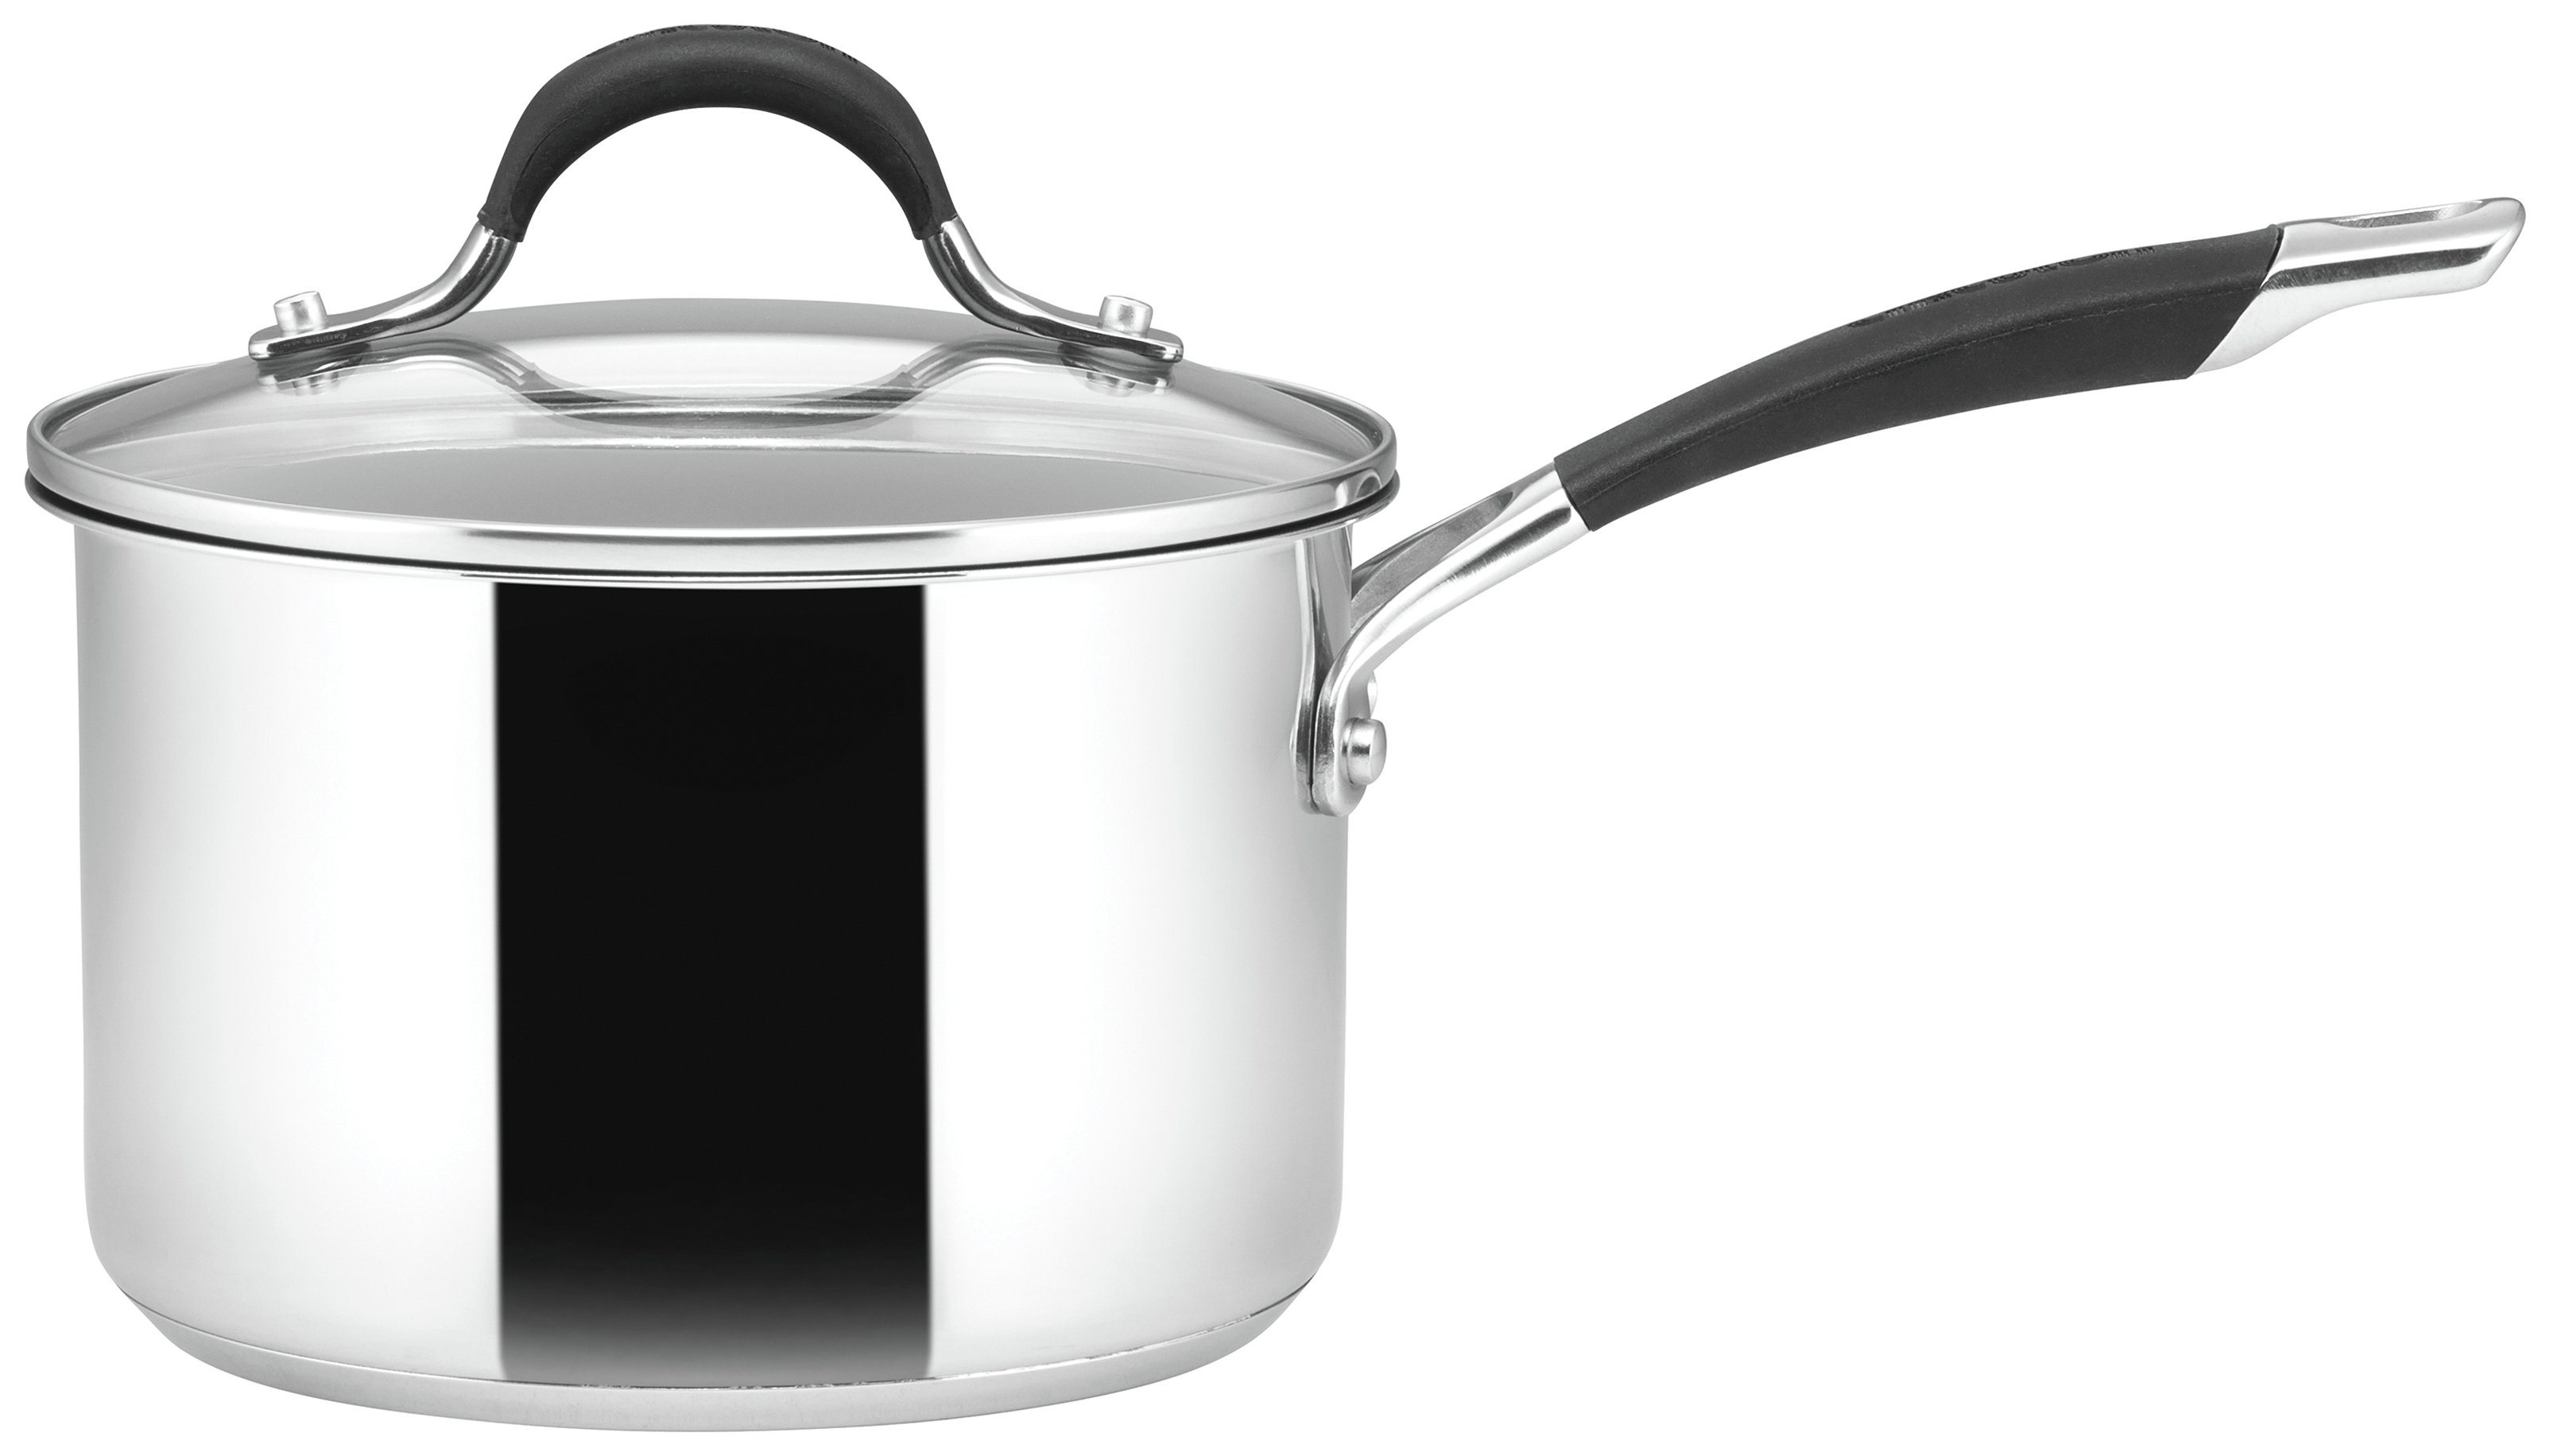 Circulon Momentum 16cm Stainless Steel Covered Saucepan